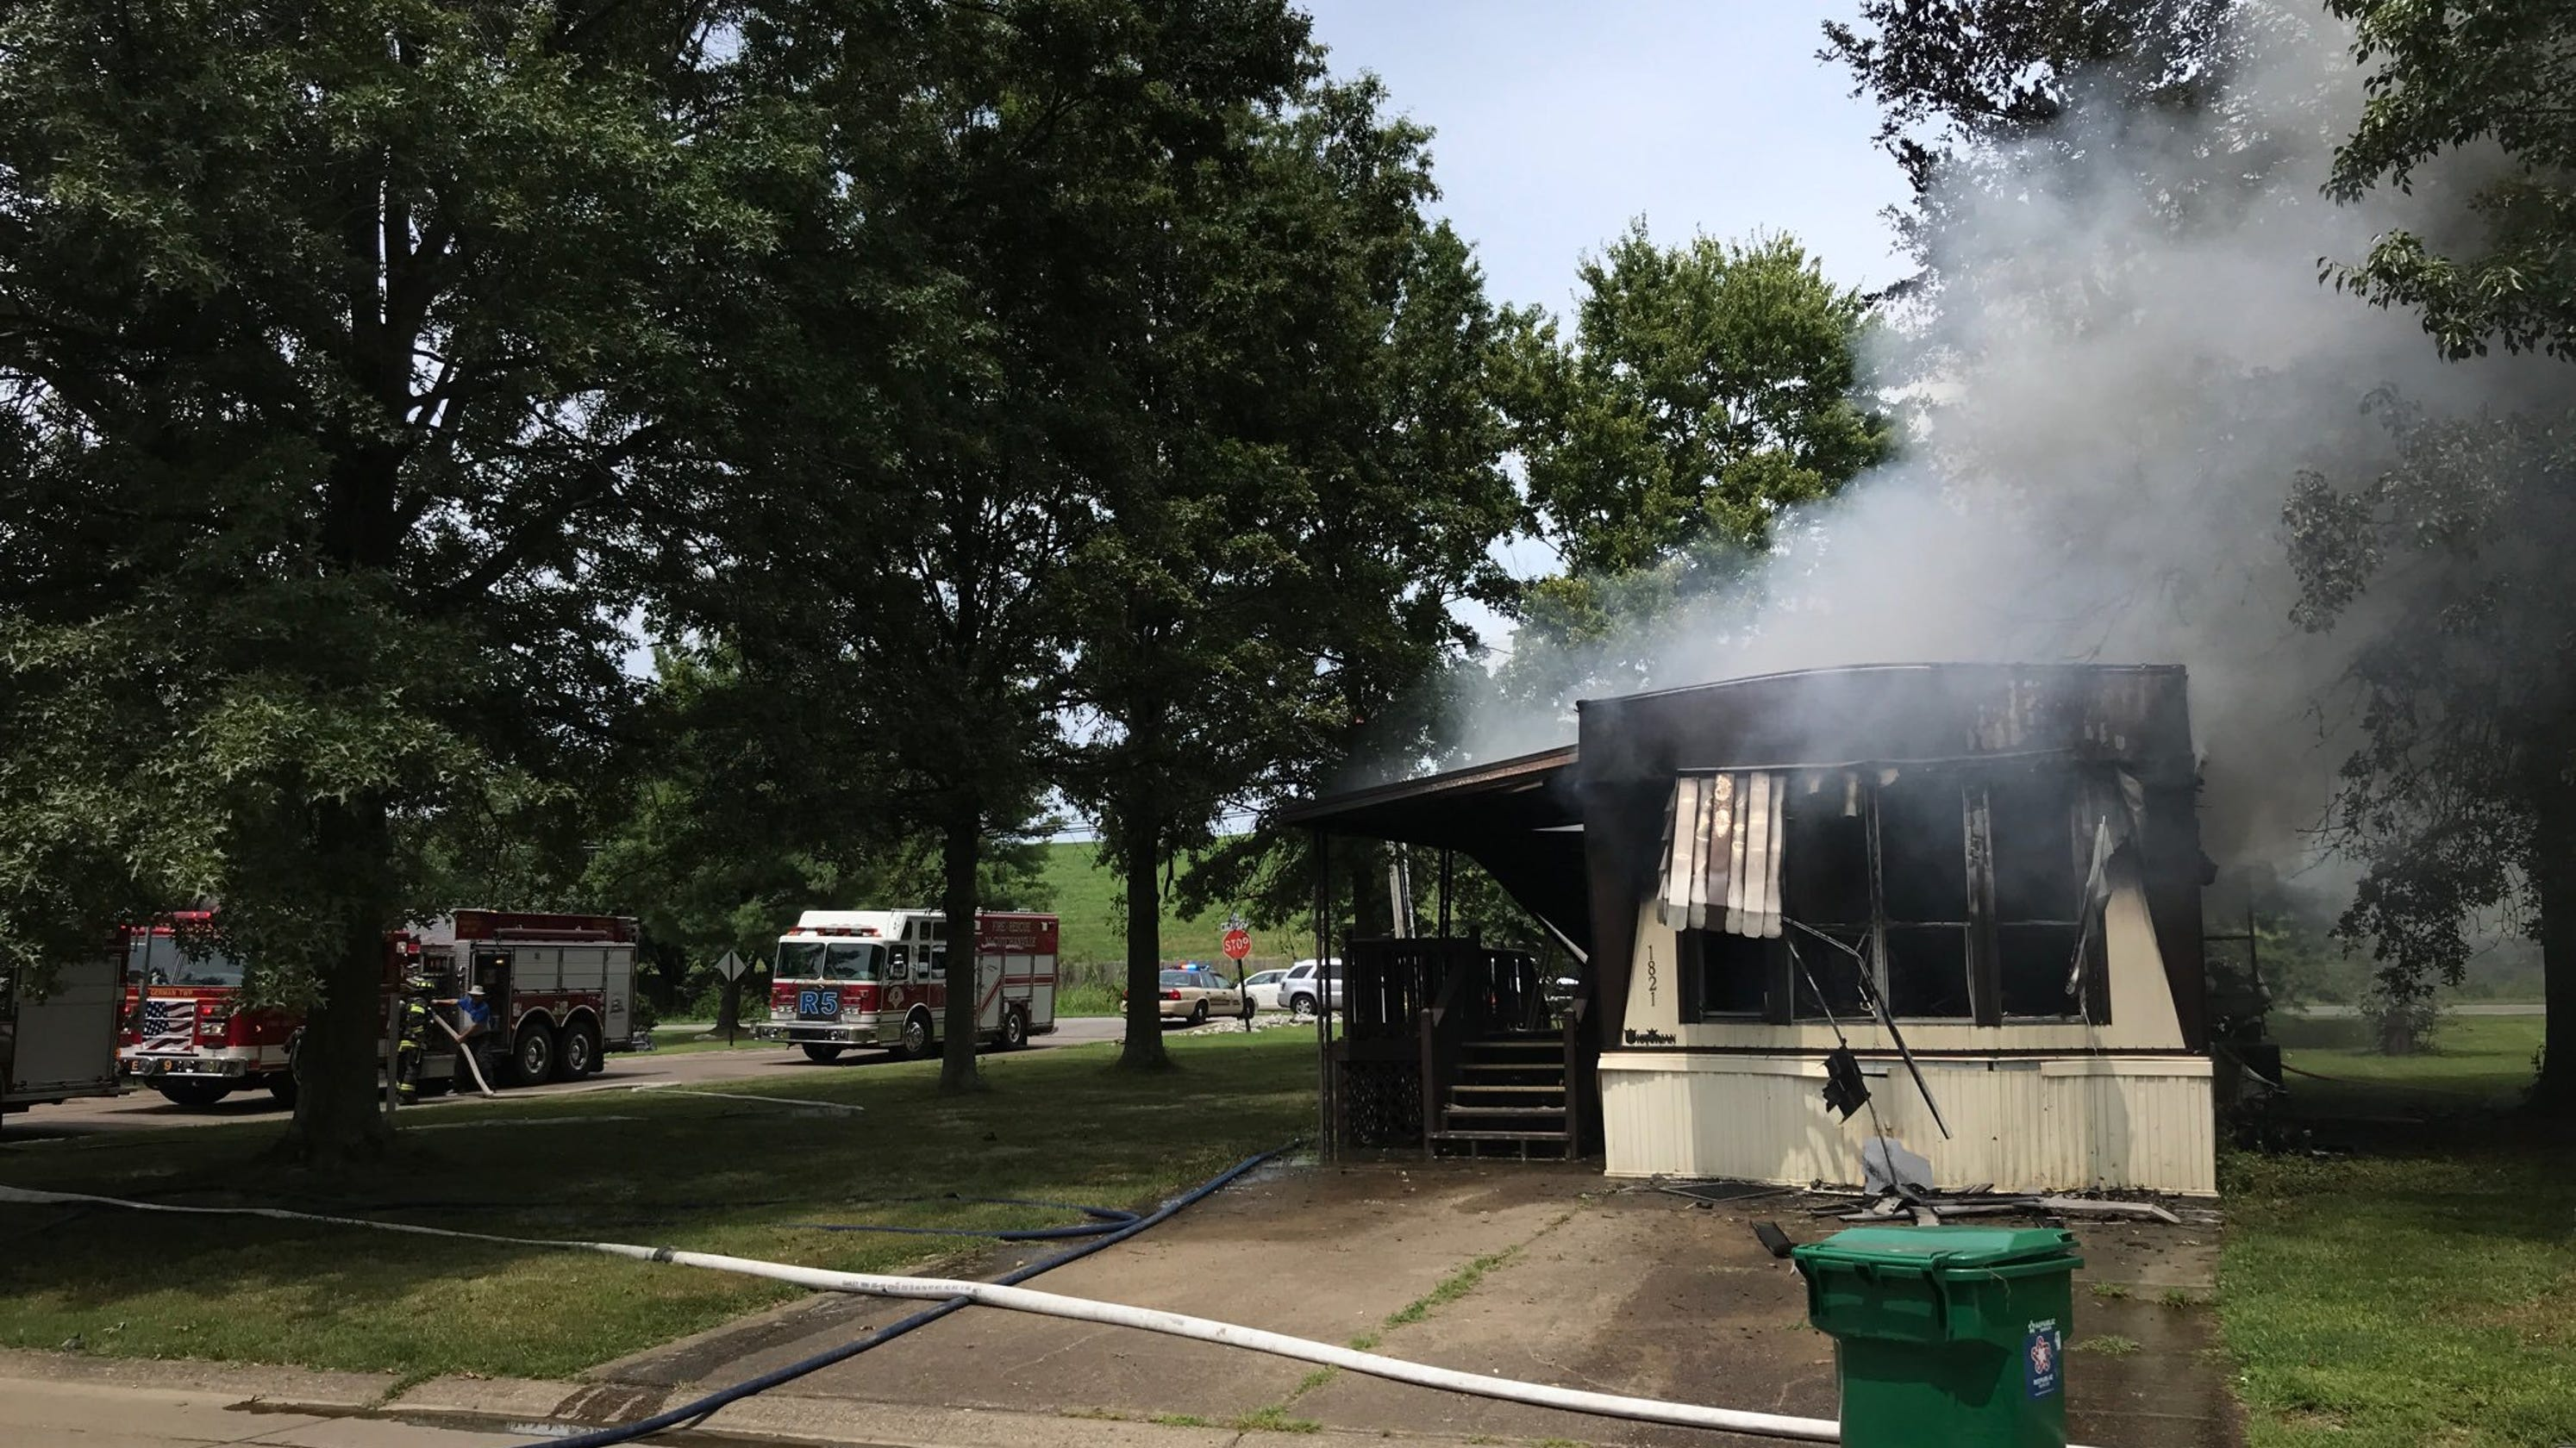 Mobile home fire reported in Vanderburgh County